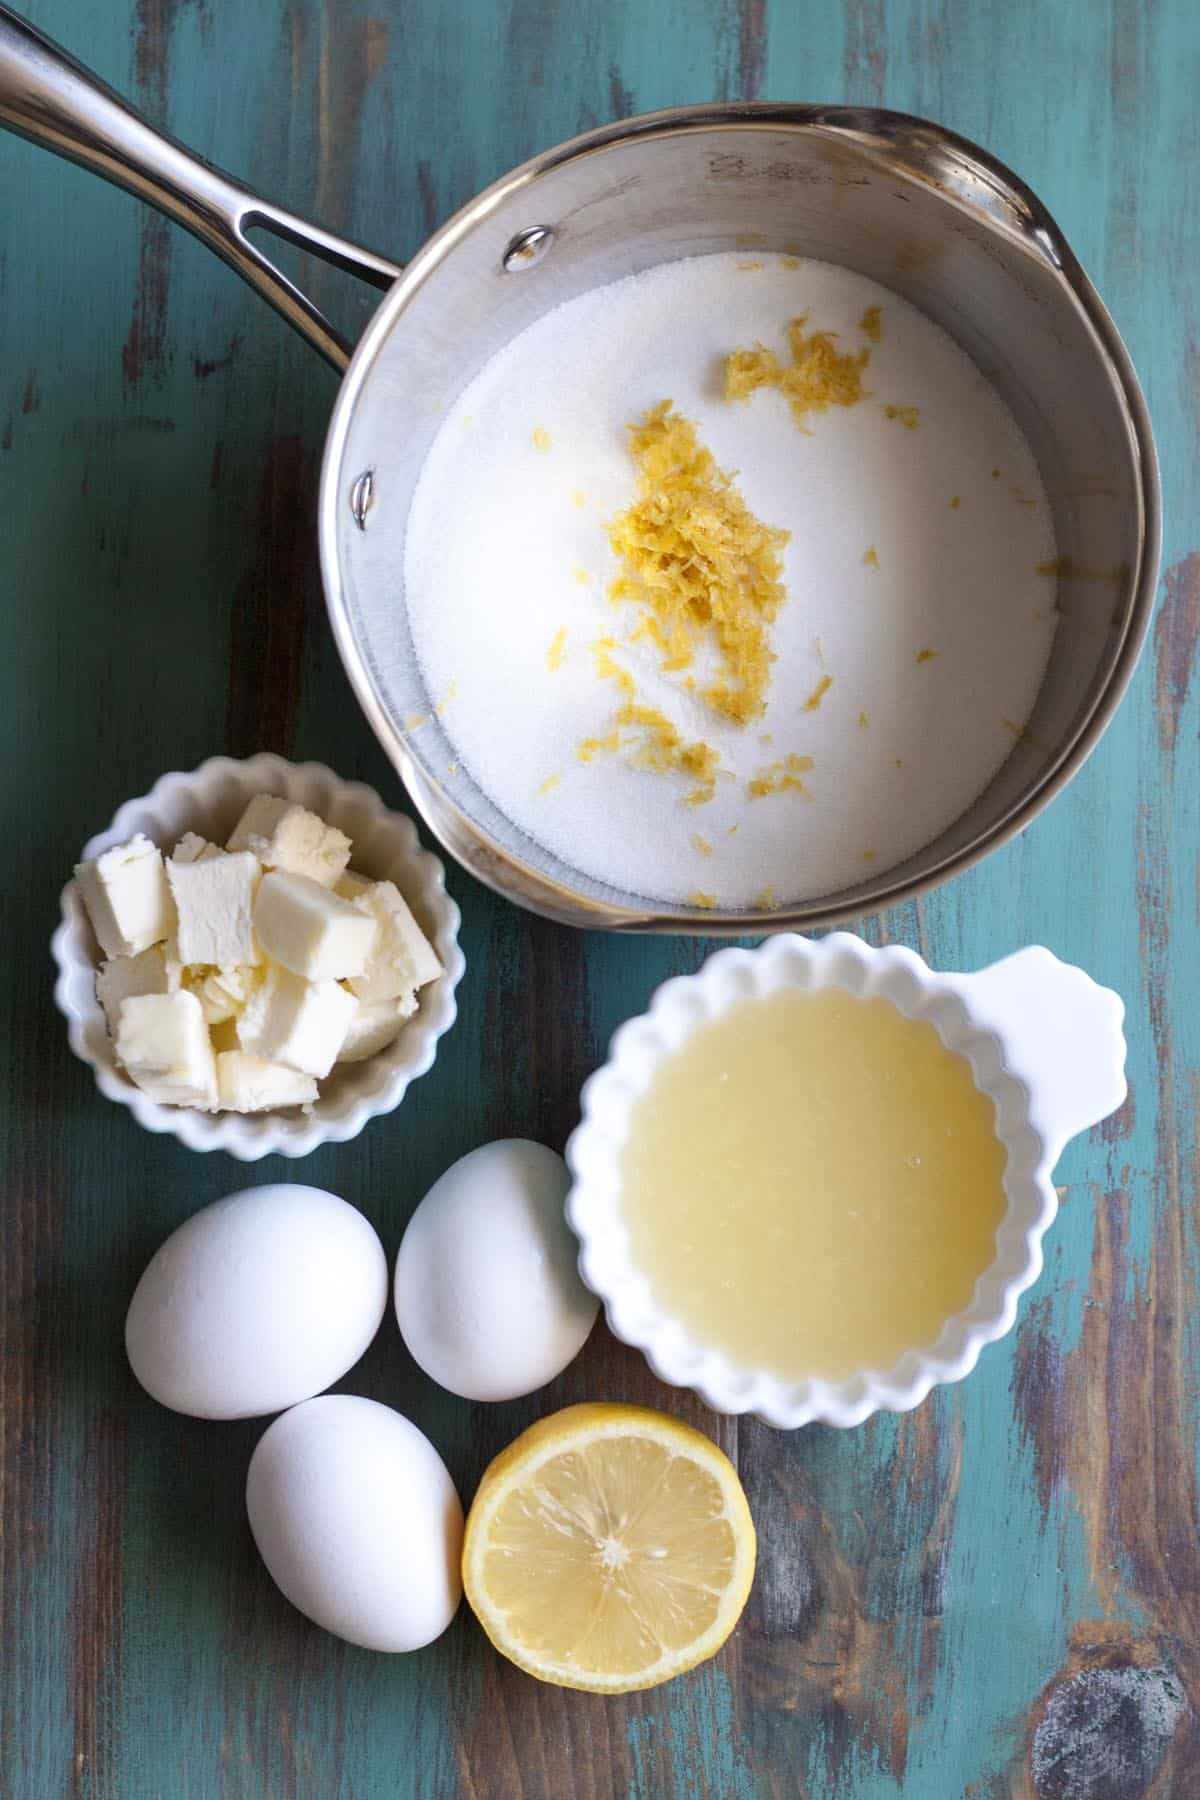 Ingredients for lemon curd on a green surface